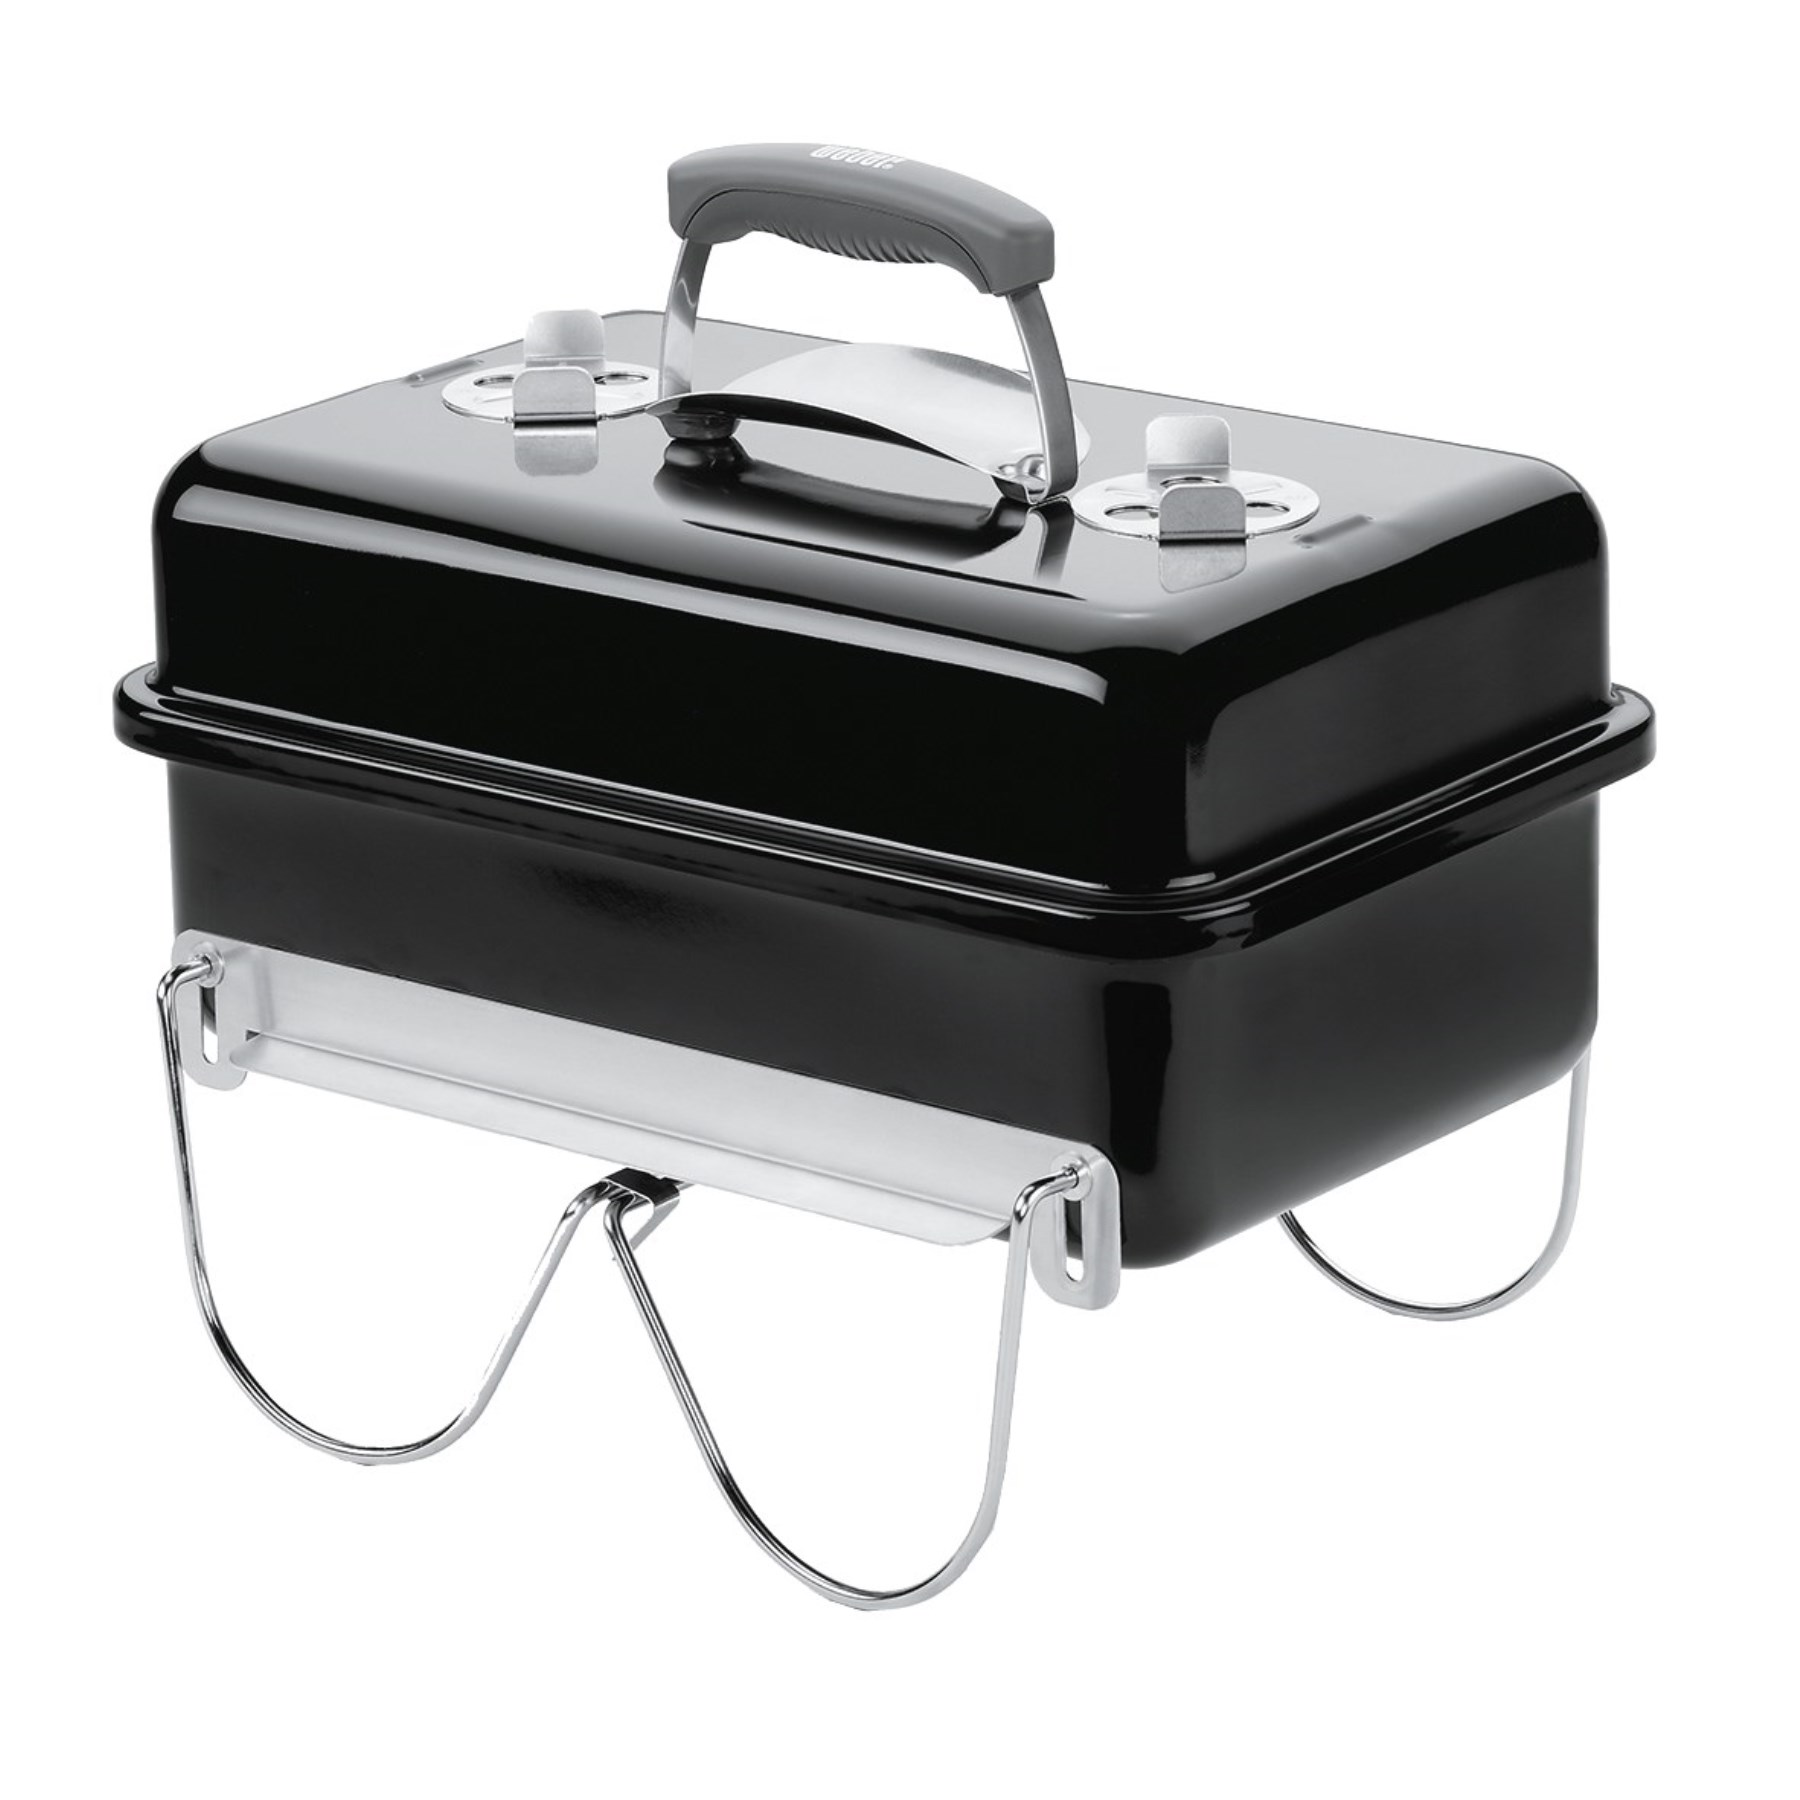 1214986 - Holzkohlegrill Go-Anywhere 42x26 cm, Black